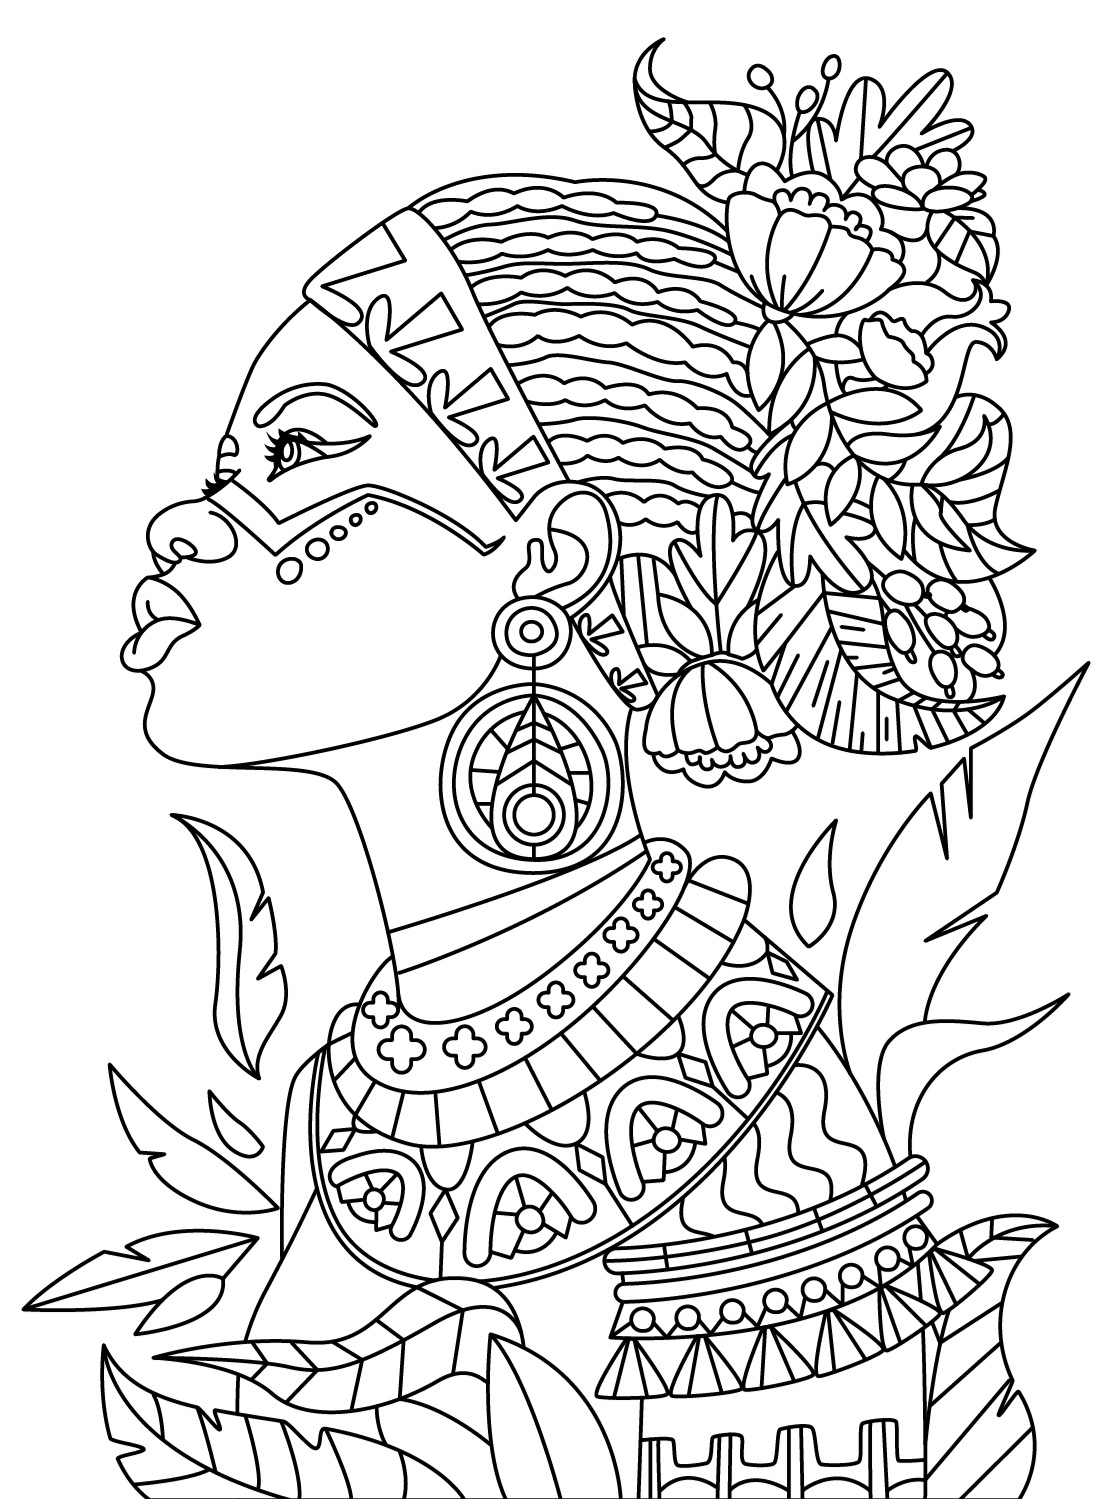 1116x1499 African Colorish Coloring Book App For Adults Mandala Relax By